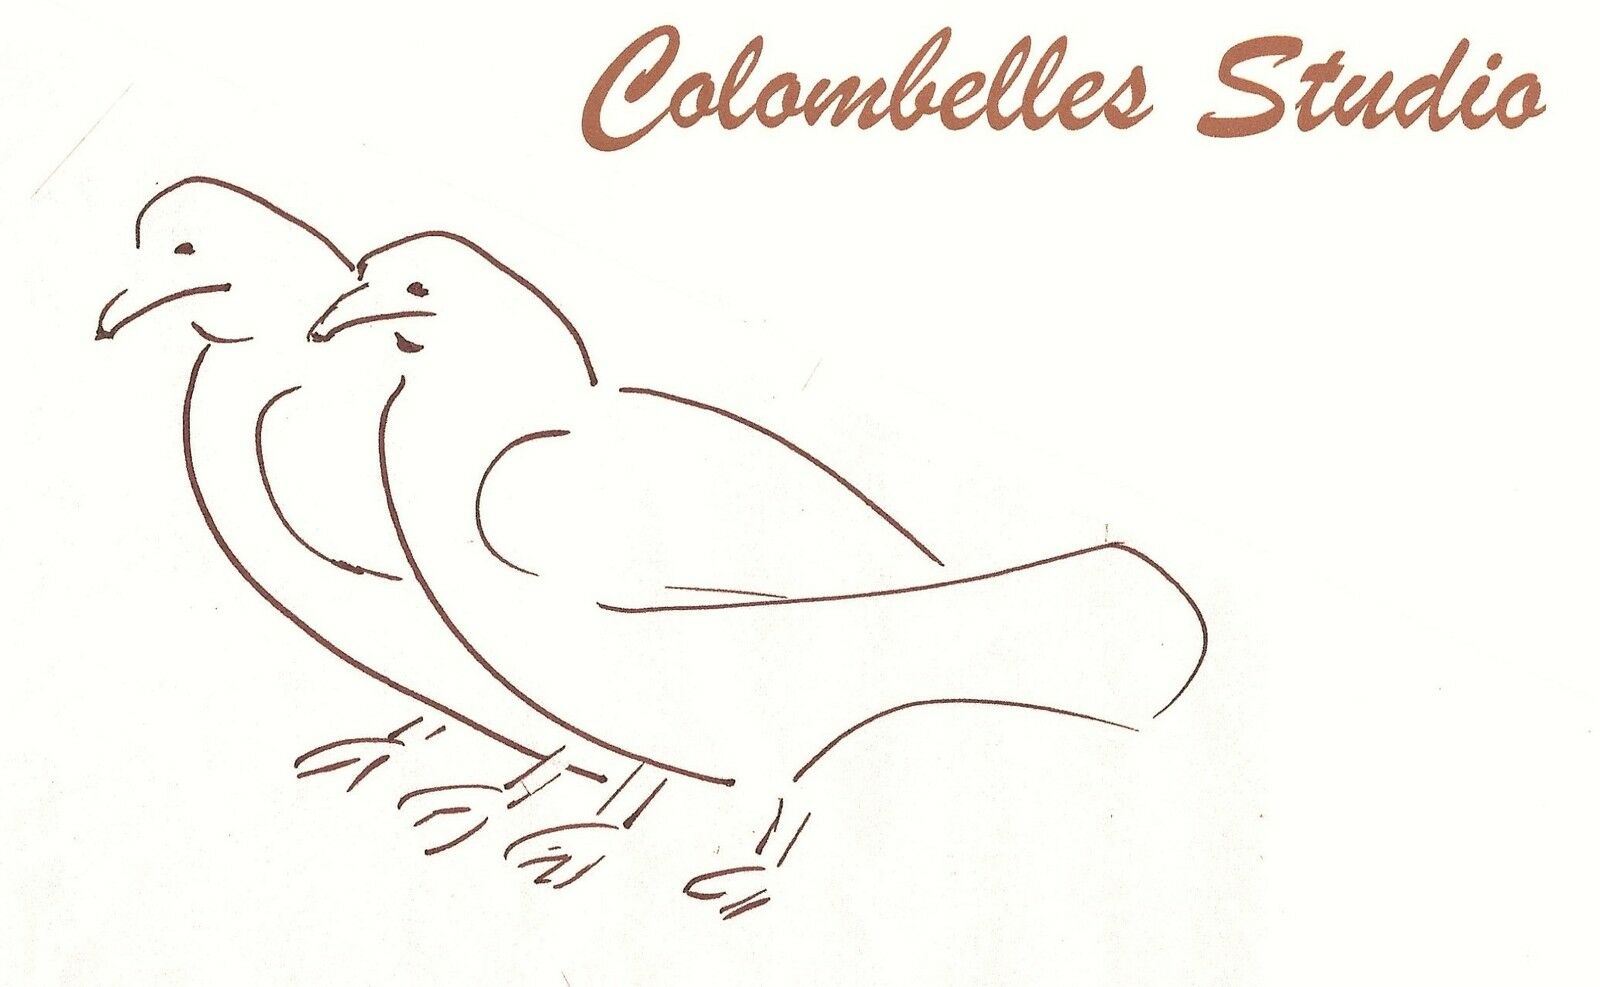 COLOMBELLES STUDIO